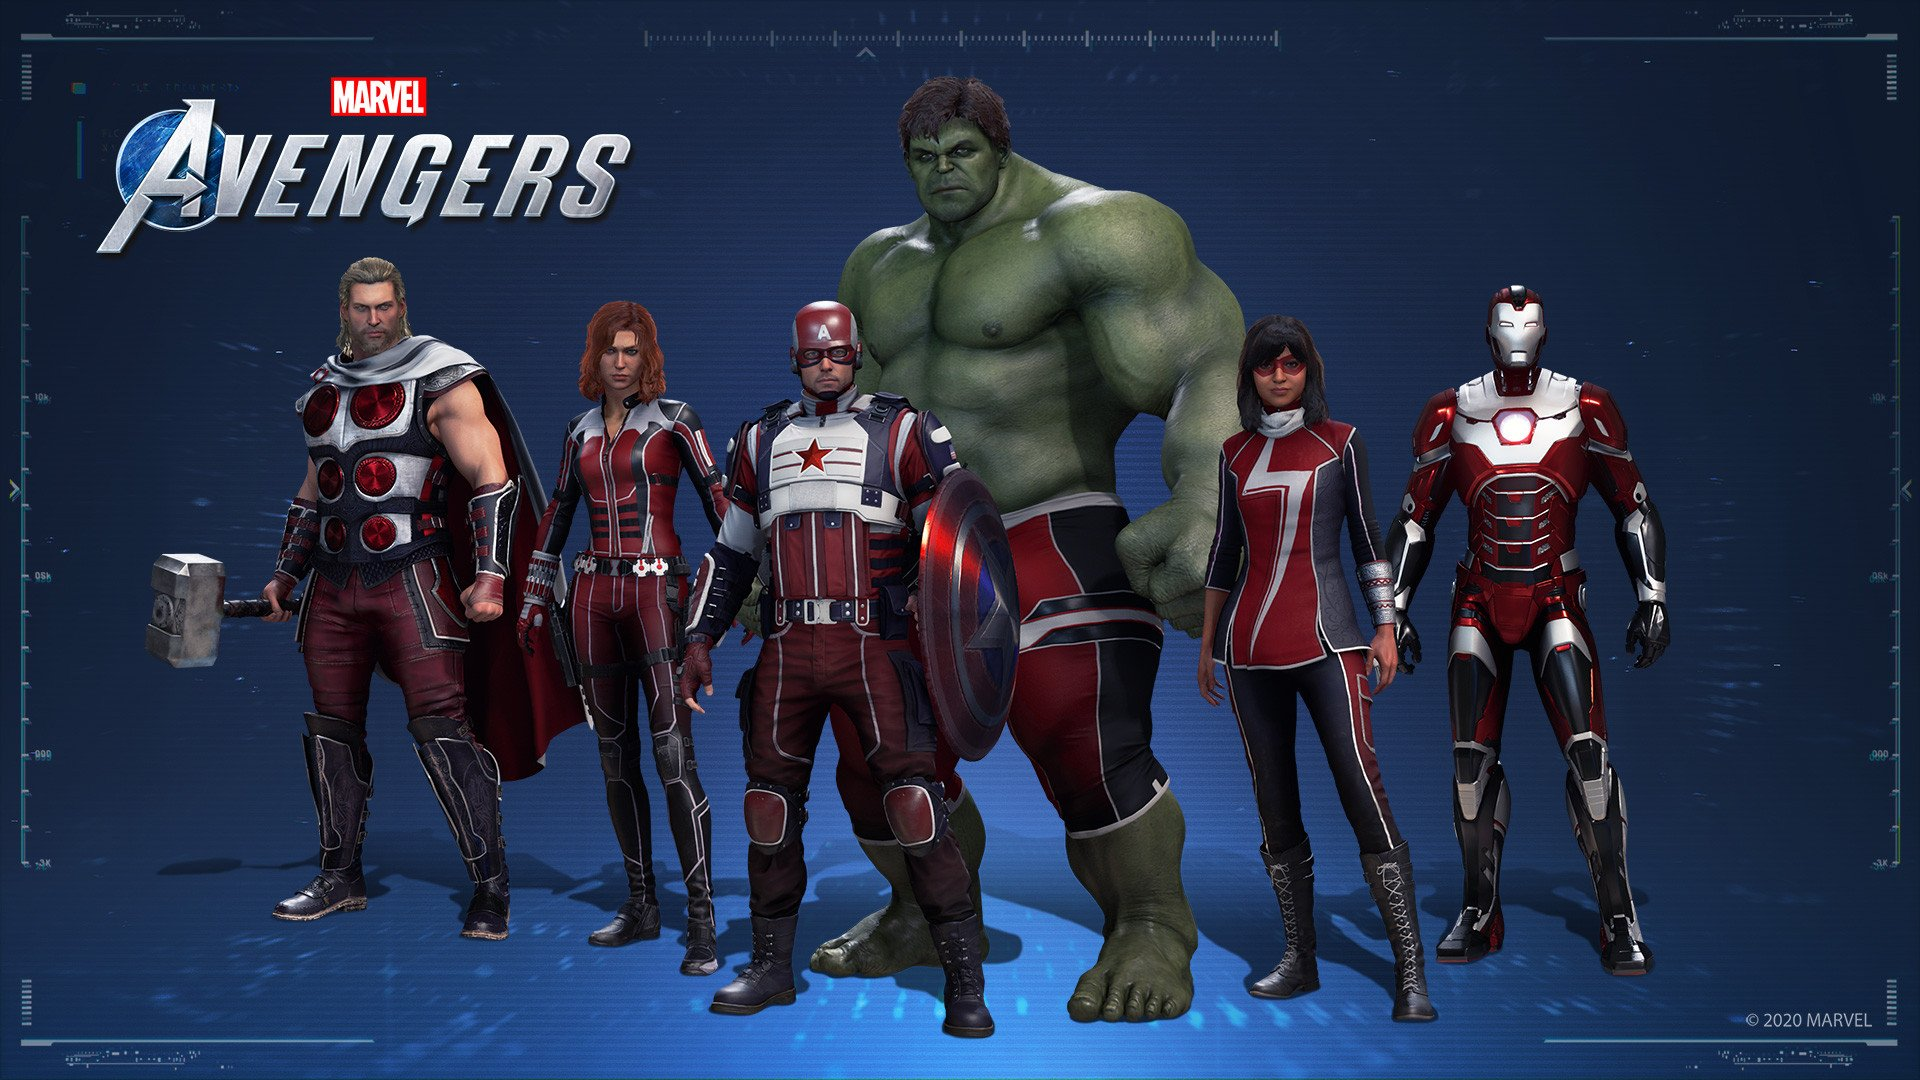 Avengers will also have exclusive content for mobile network customers - Video Games Chronicle